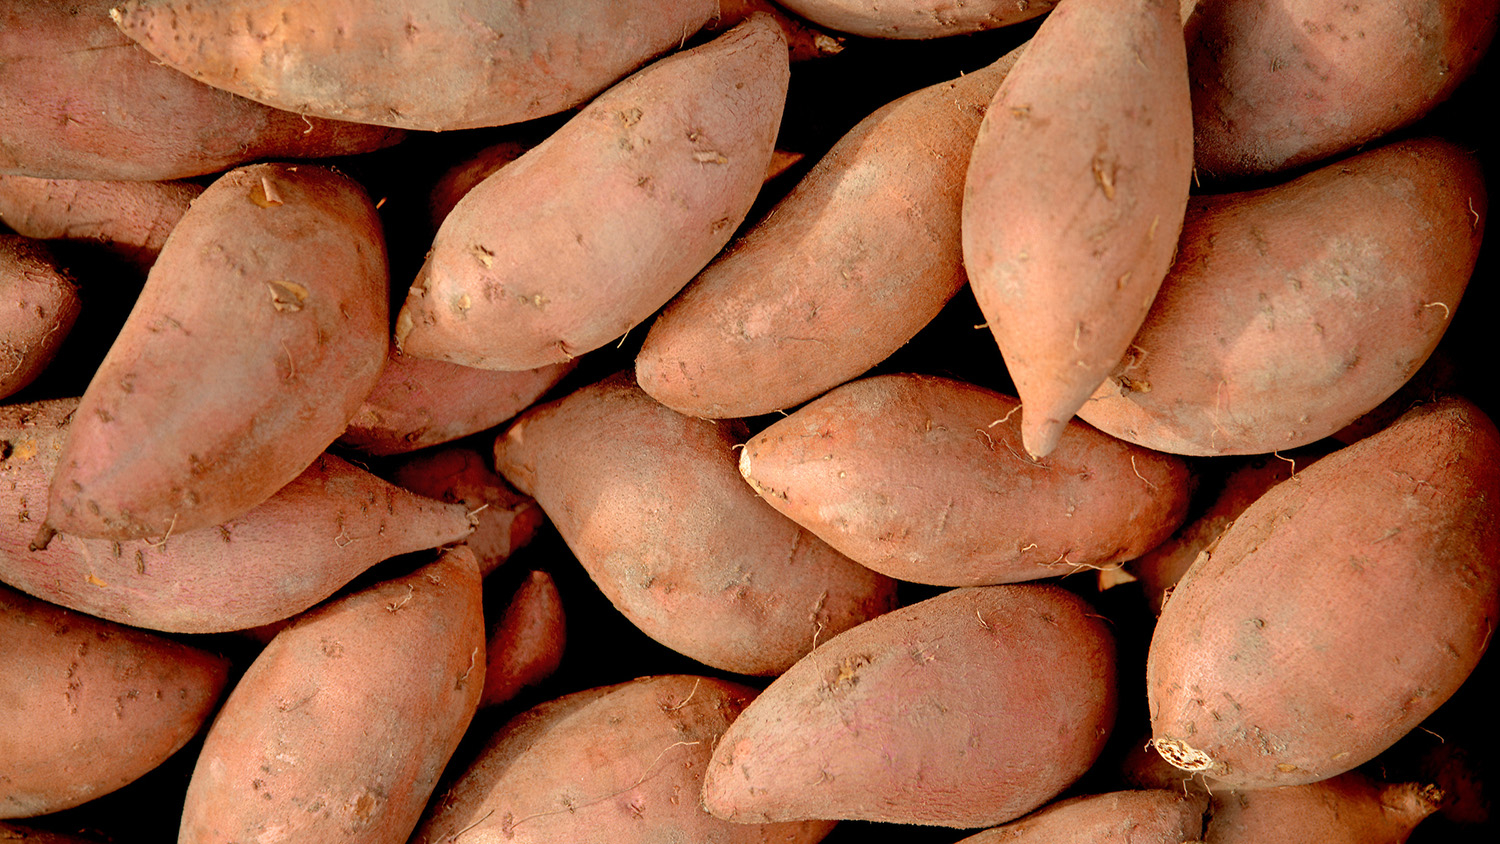 A bunch of sweetpotatoes